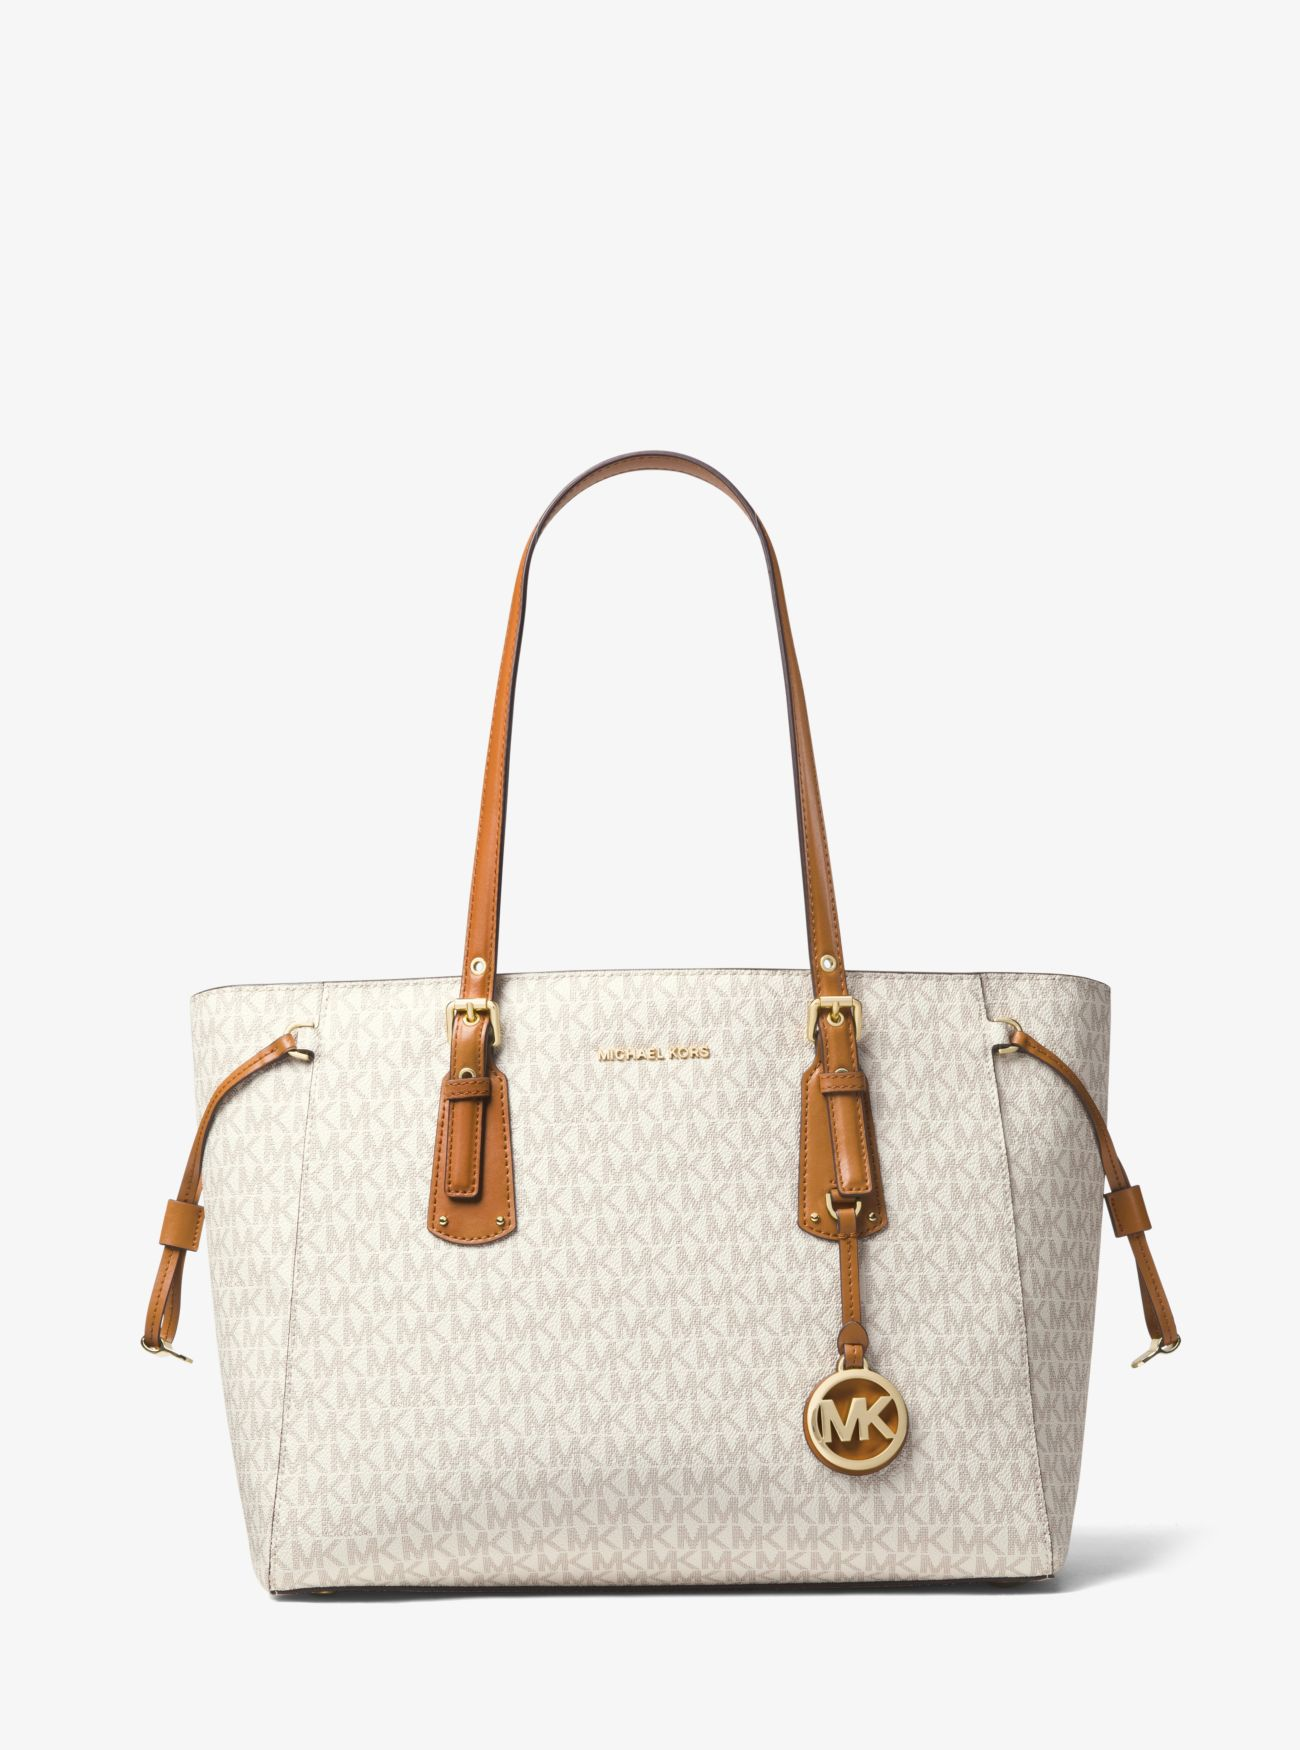 Michael Kors Bolso Tote Voyager Mediano Con Logotipo d678d5a2fa4